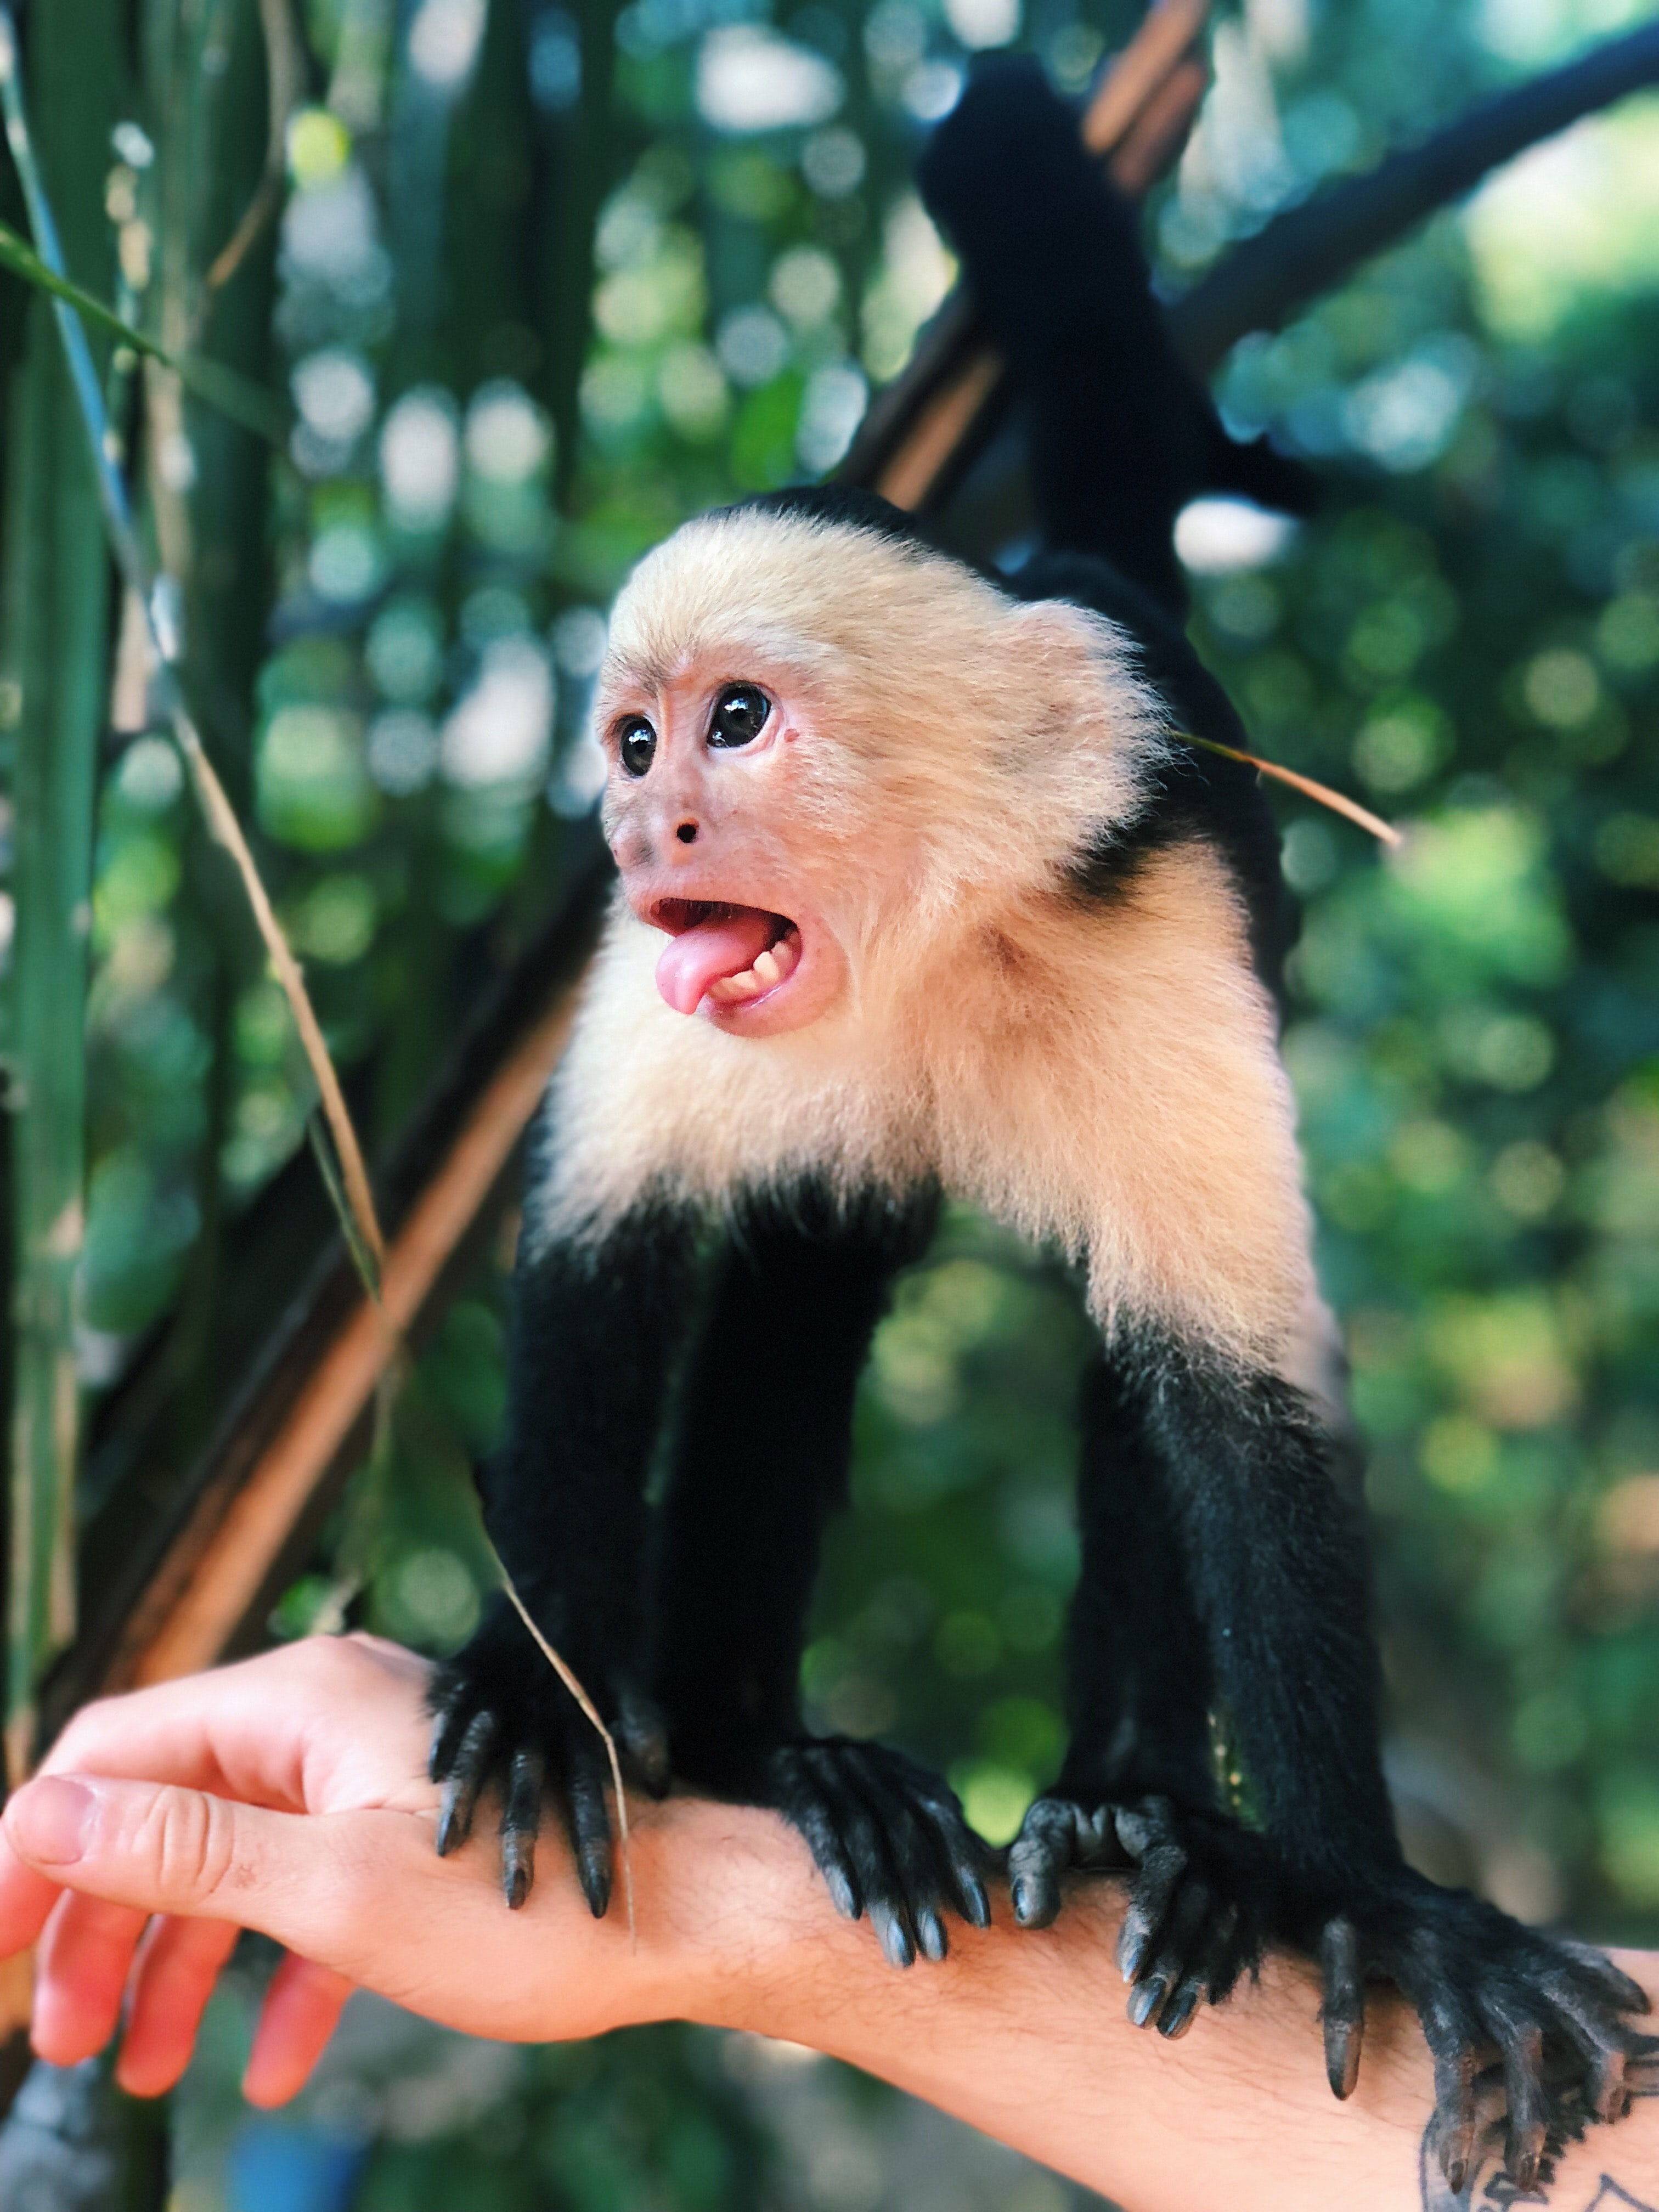 shallow focus photography of black and white monkey on person's right arm